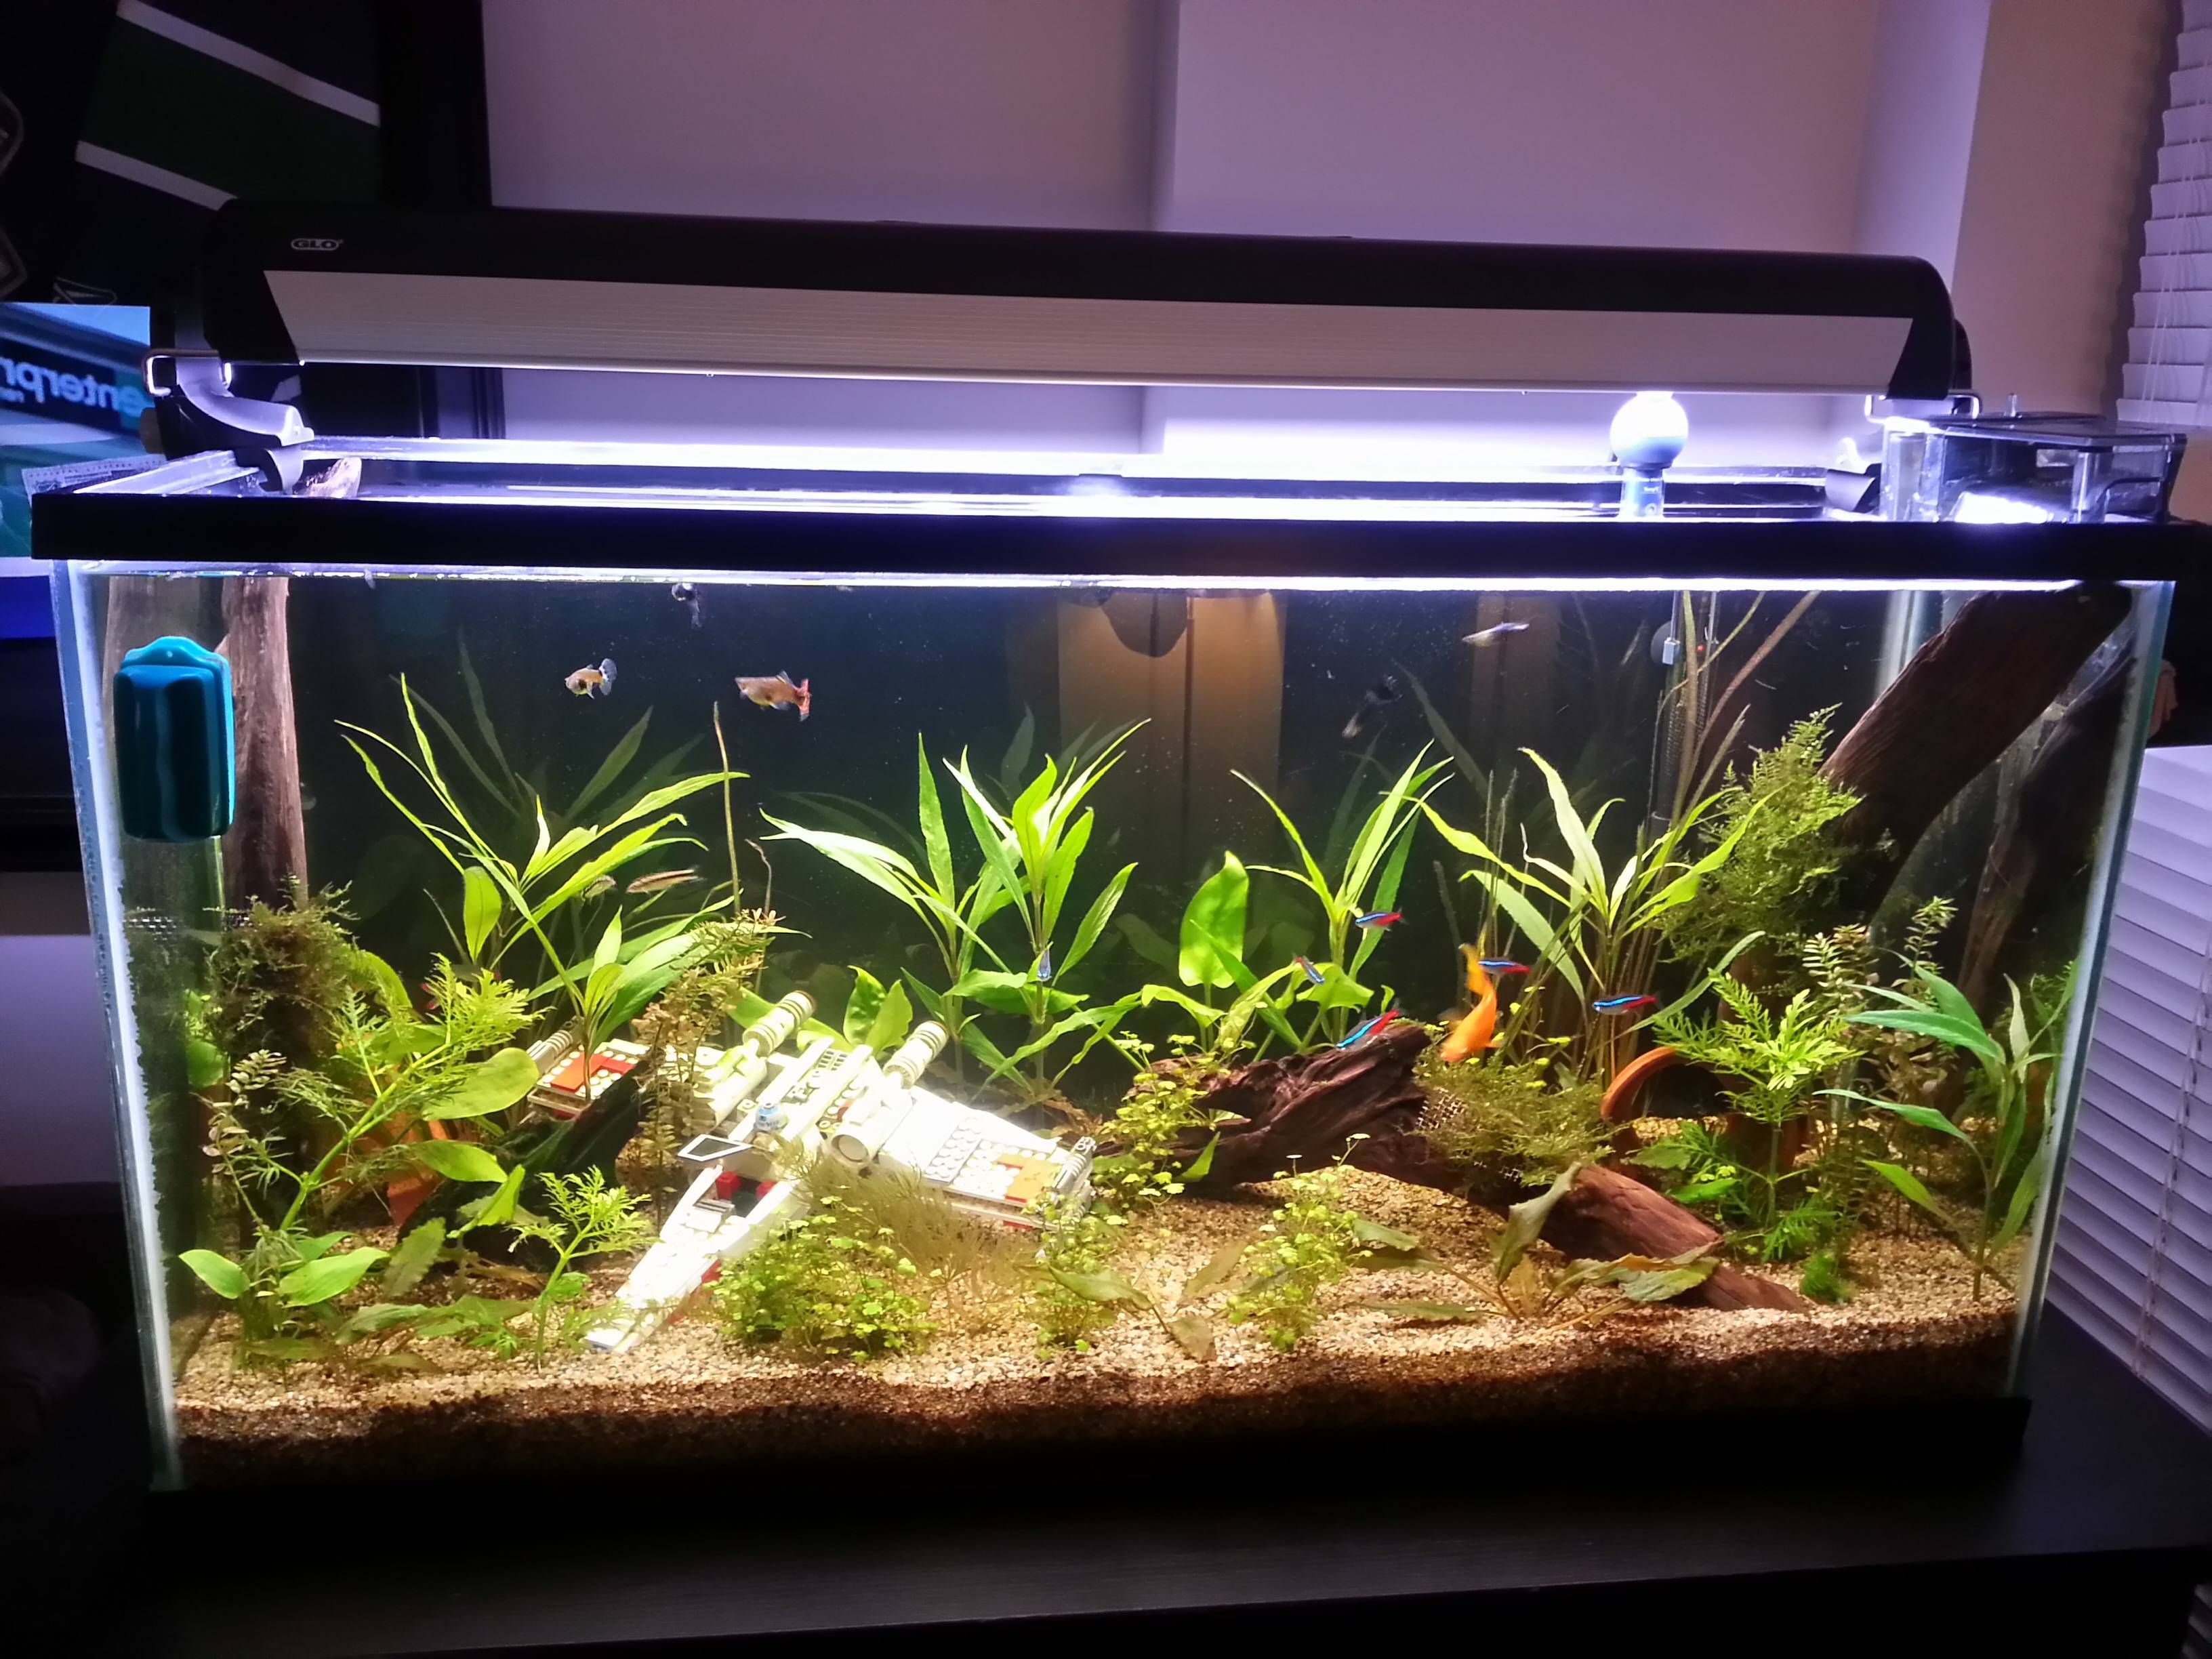 Fish tank ensemble - Desktop Dagobah Aquarium